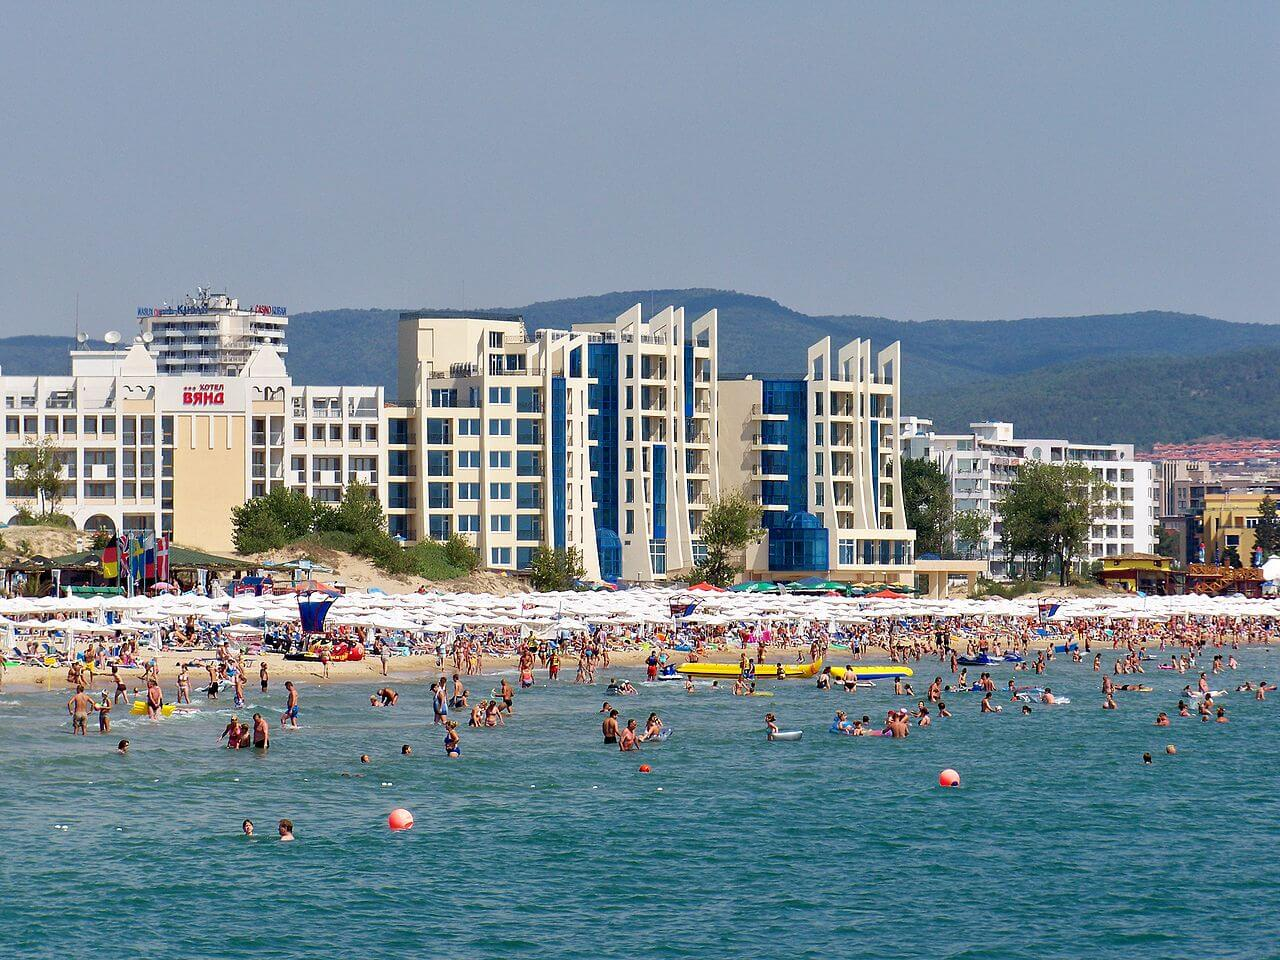 Sunny Beach from the sea